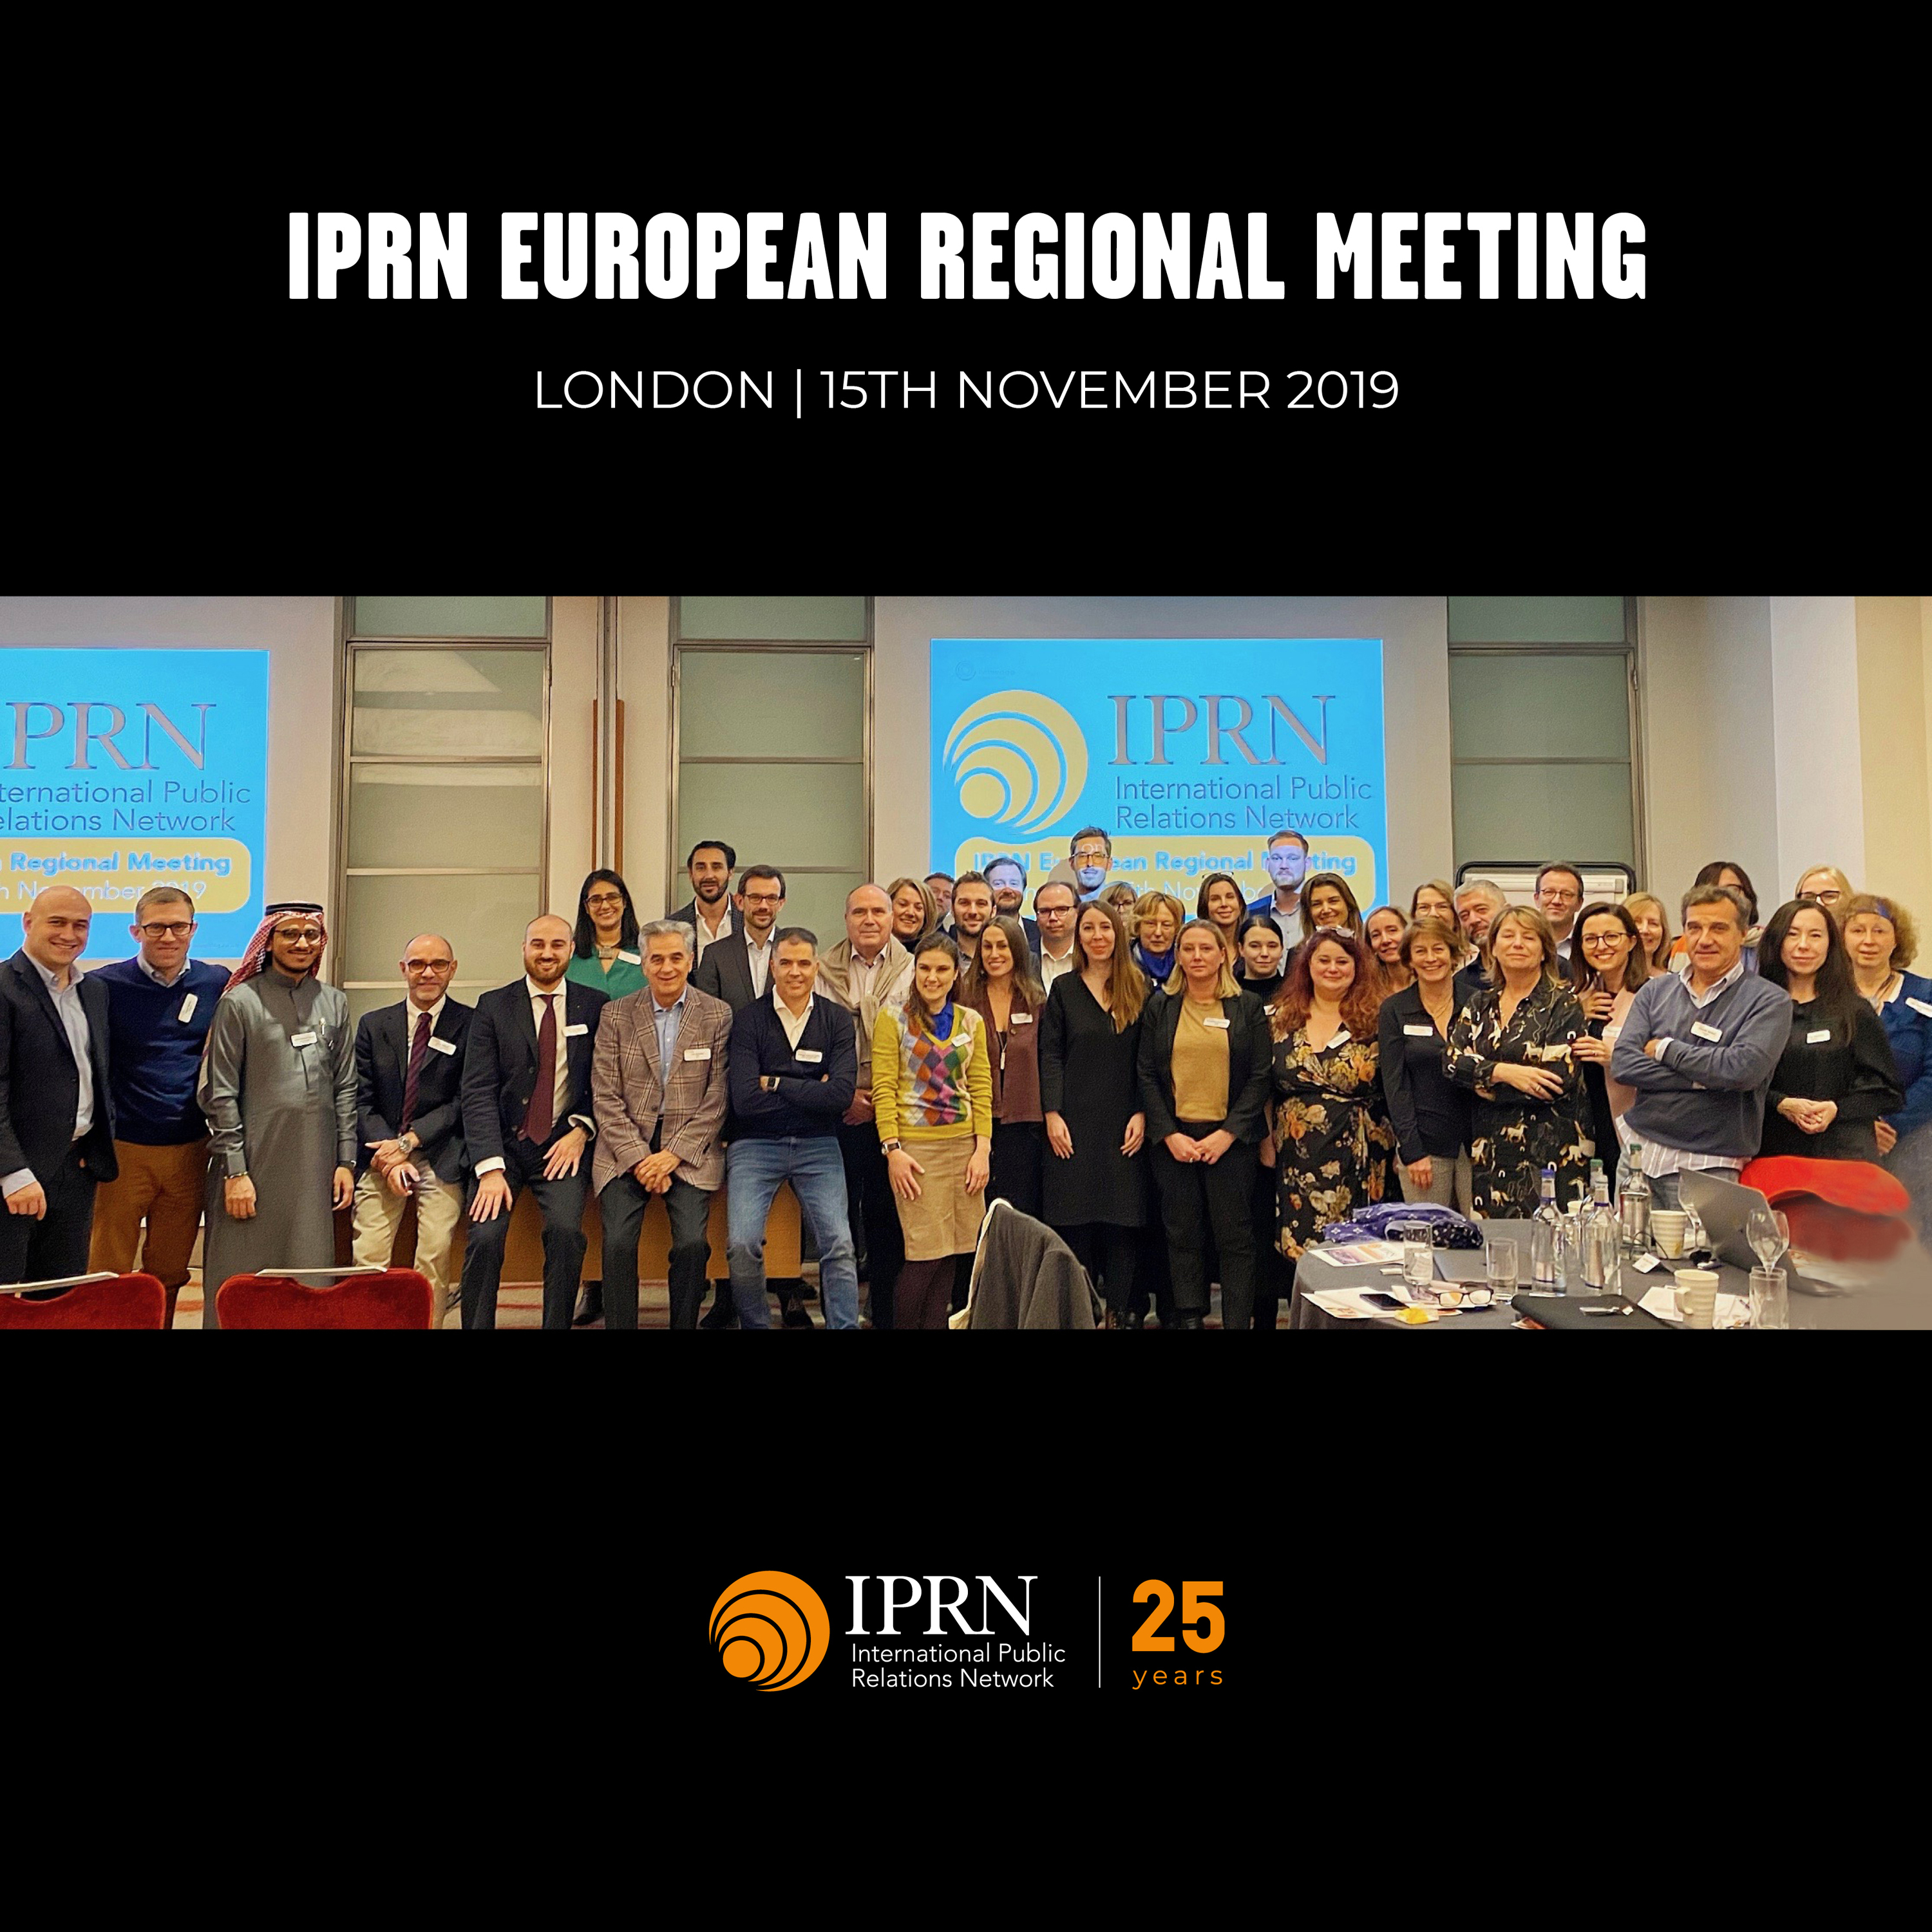 London, IPRN European Capital 2019